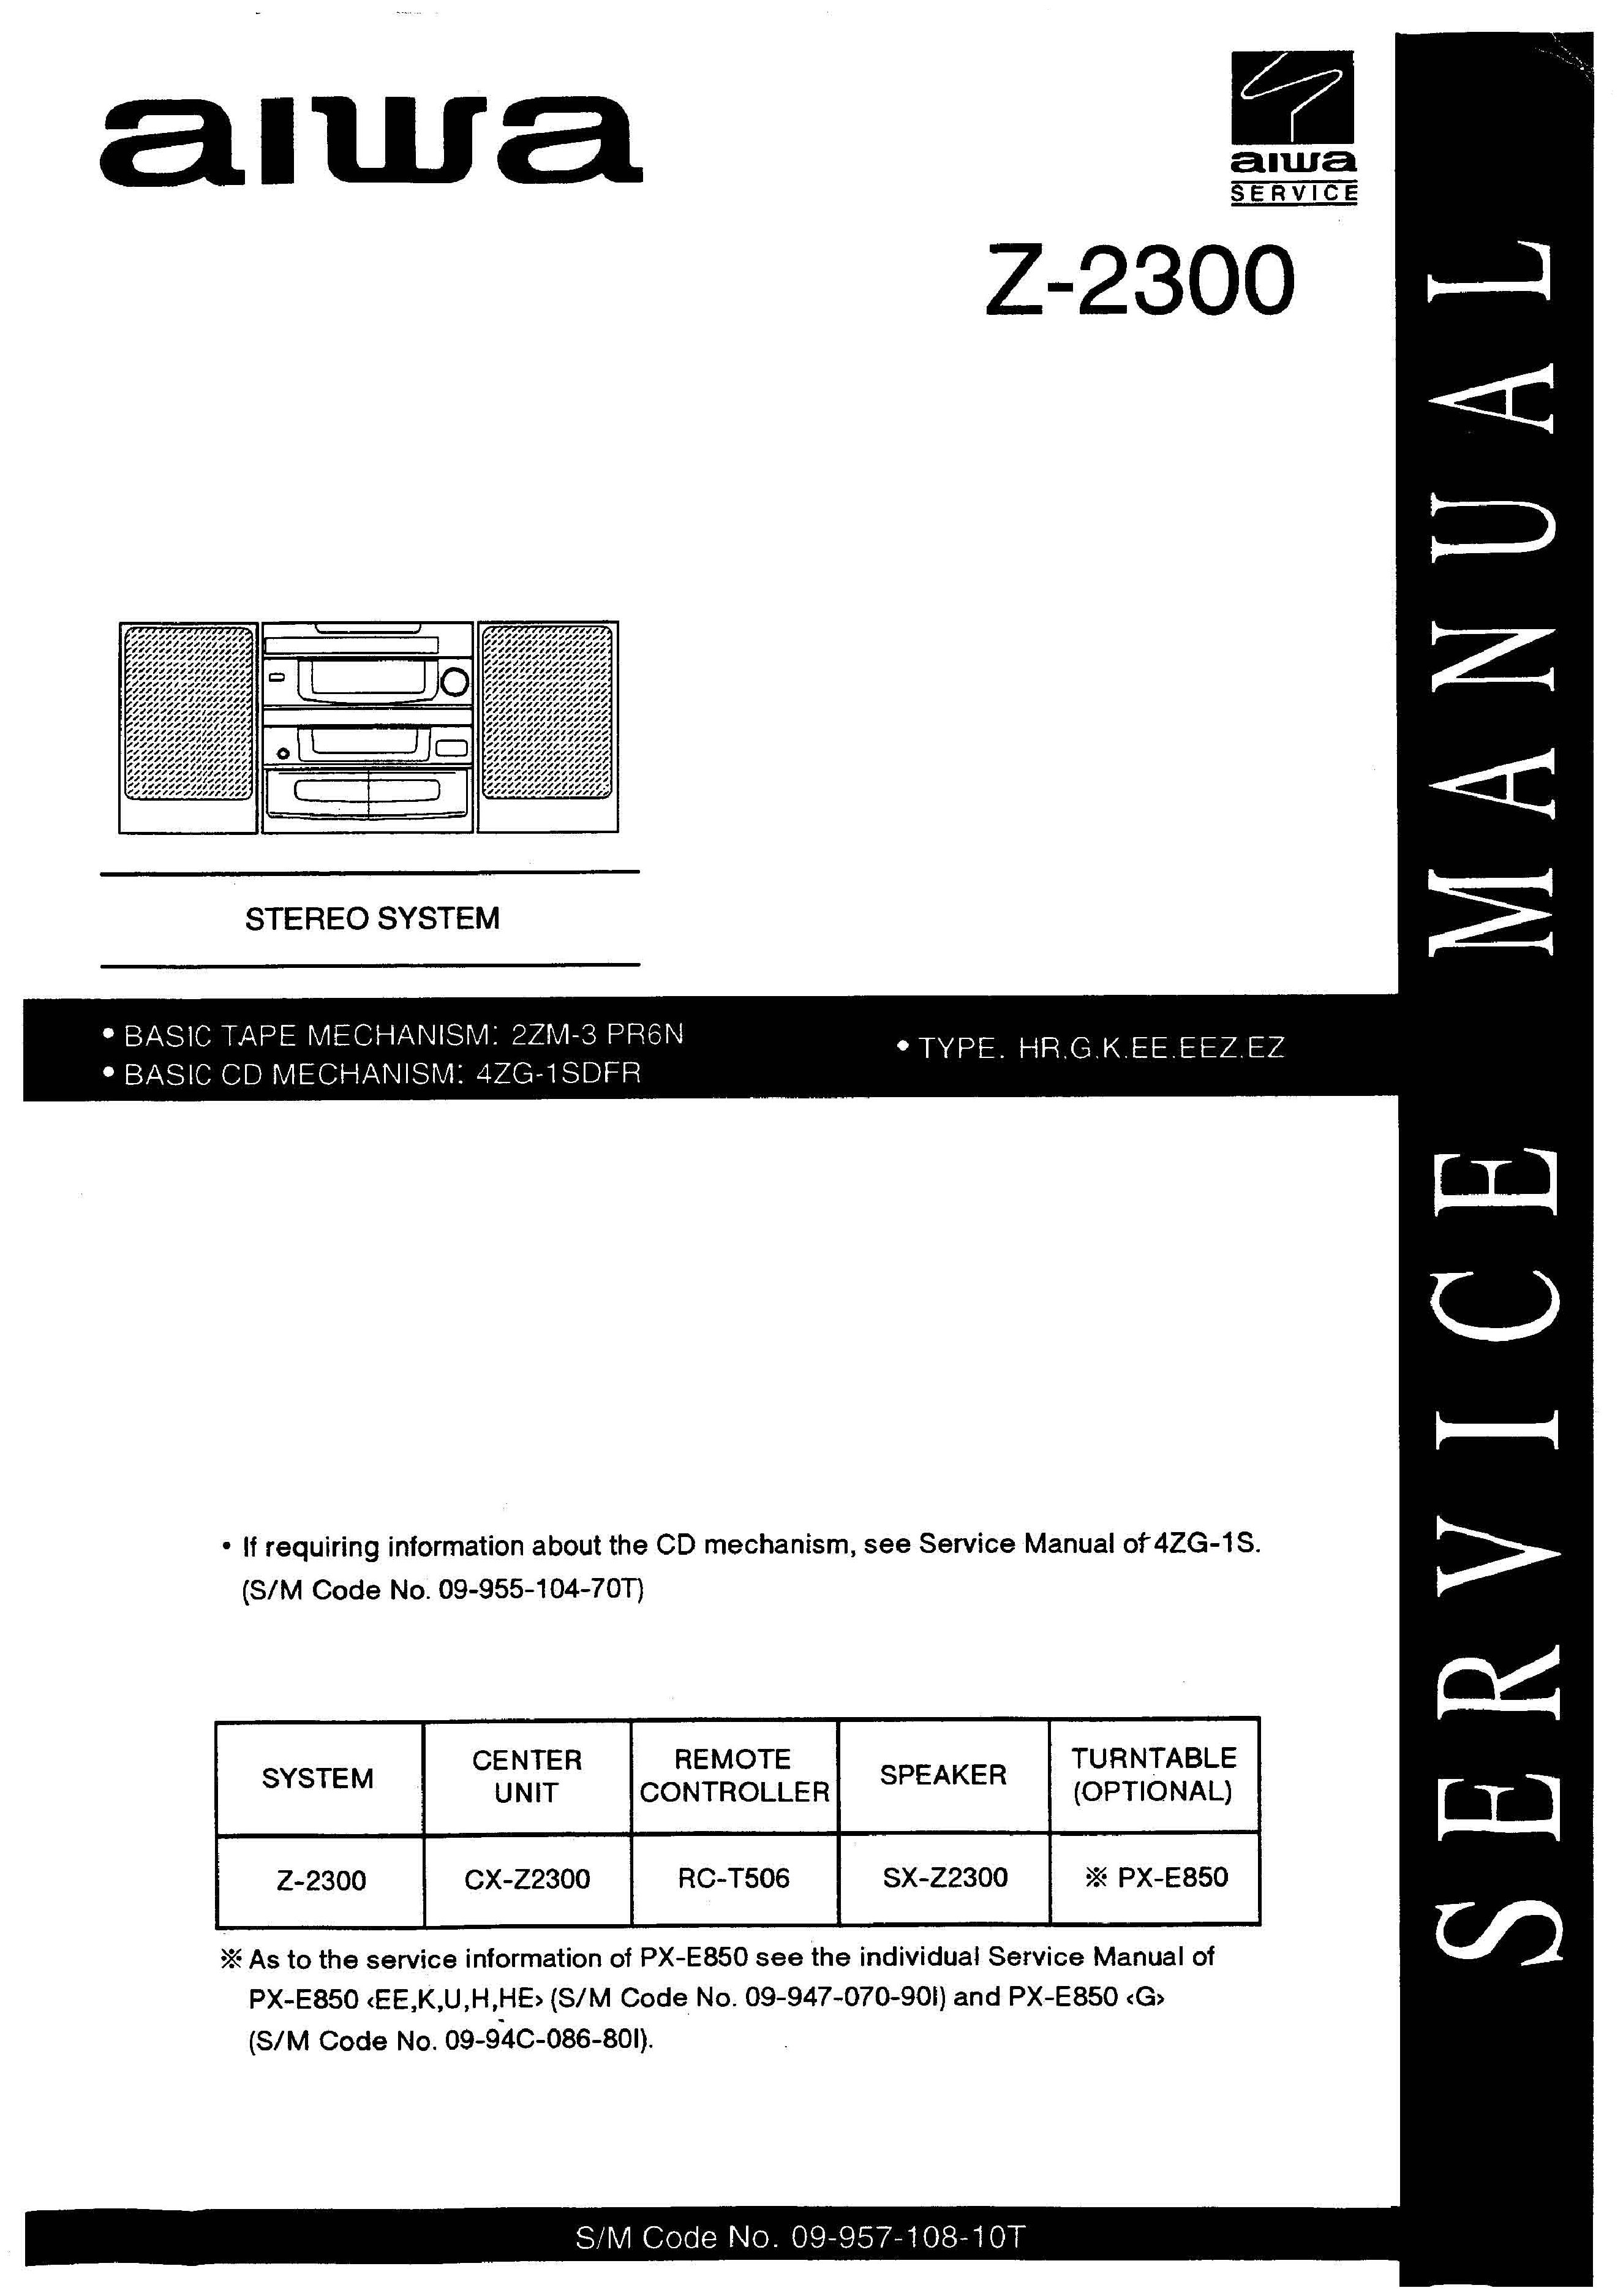 C5064E05E472F1987DE4A008CB236ACFF7FEFB92001 aiwa z2300 service manual immediate download aiwa cdc-x144 wiring diagram at bayanpartner.co